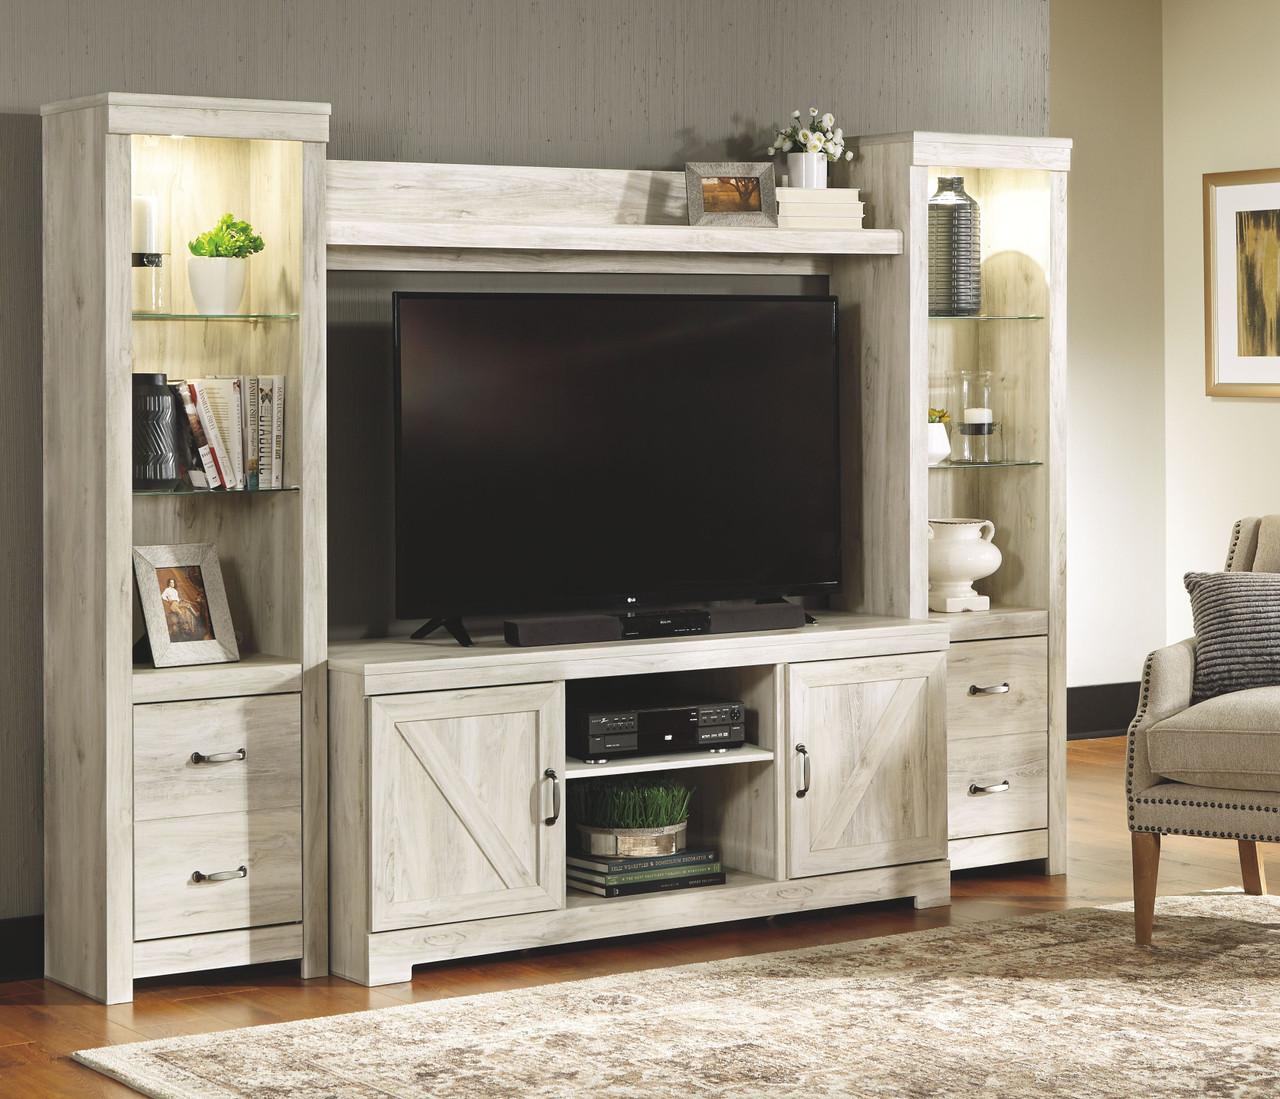 The Bellaby Whitewash Entertainment Center Lg Tv Stand 2 Piers Bridge Available At Bitney S Furniture And Mattress Company Serving Kalispell Mt